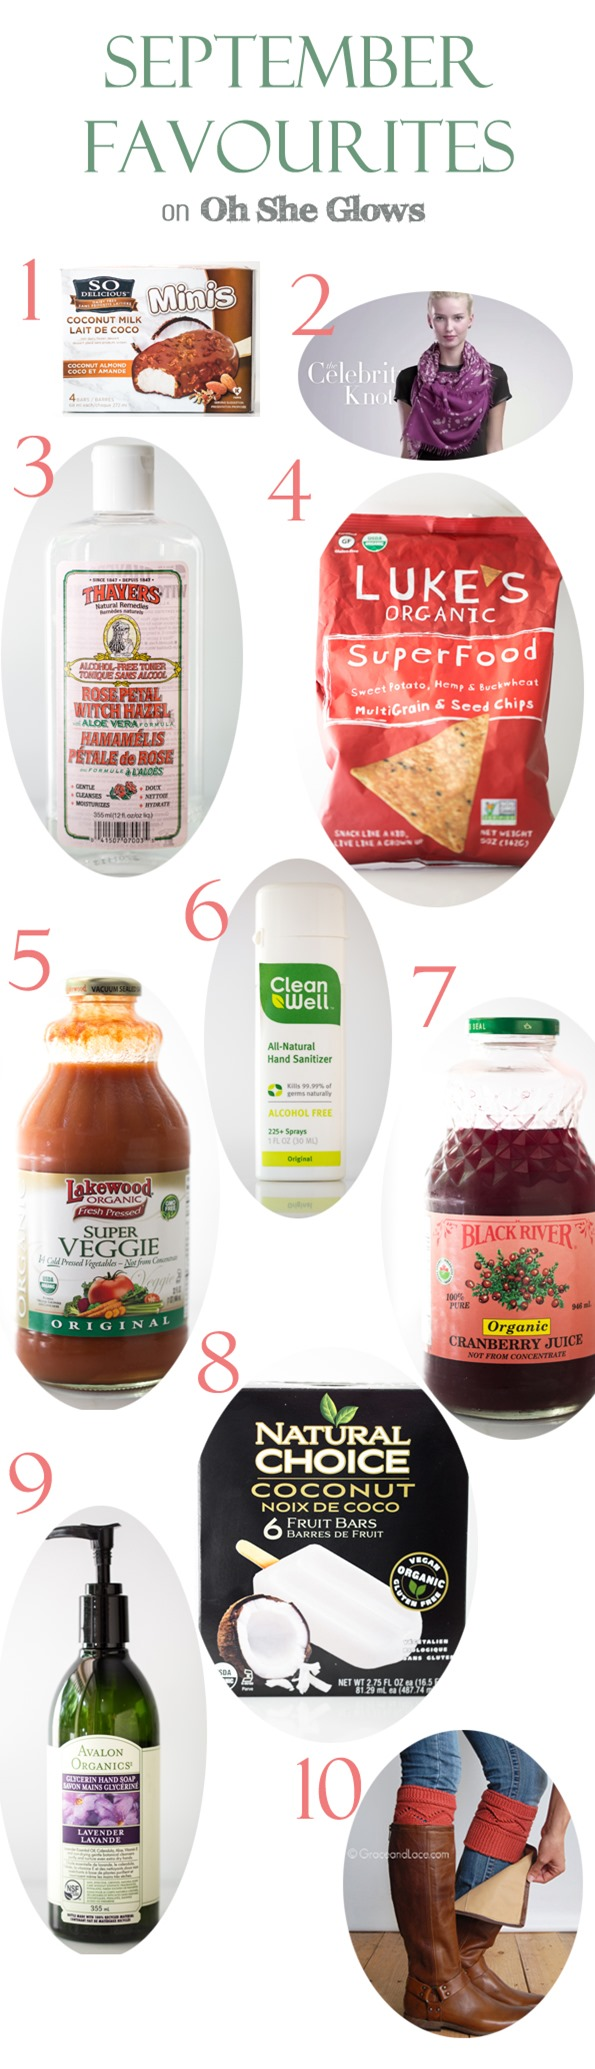 favoriteveganproducts